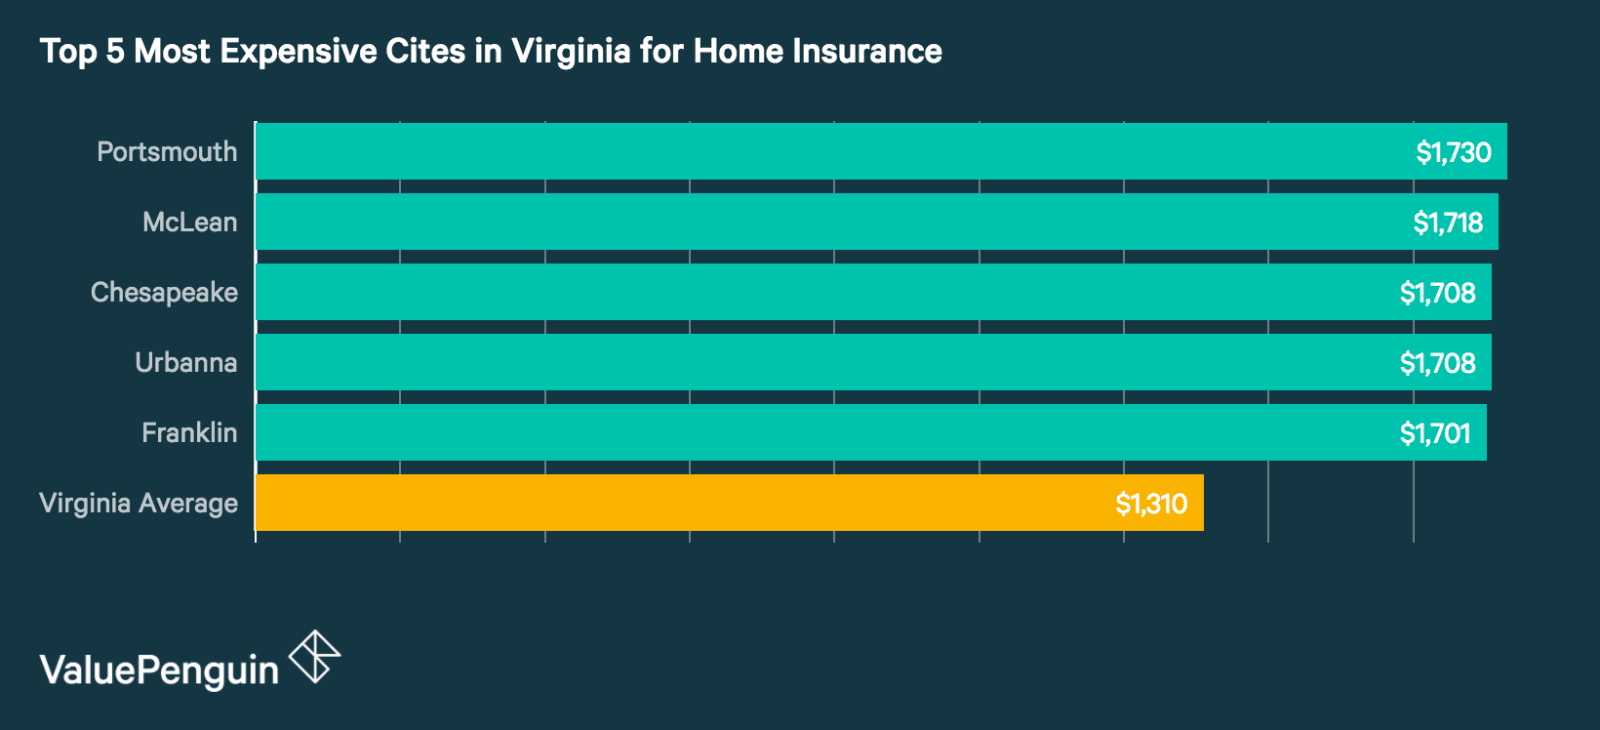 Top 5 Most Expensive Cities in Virginia for Homeowners Insurance